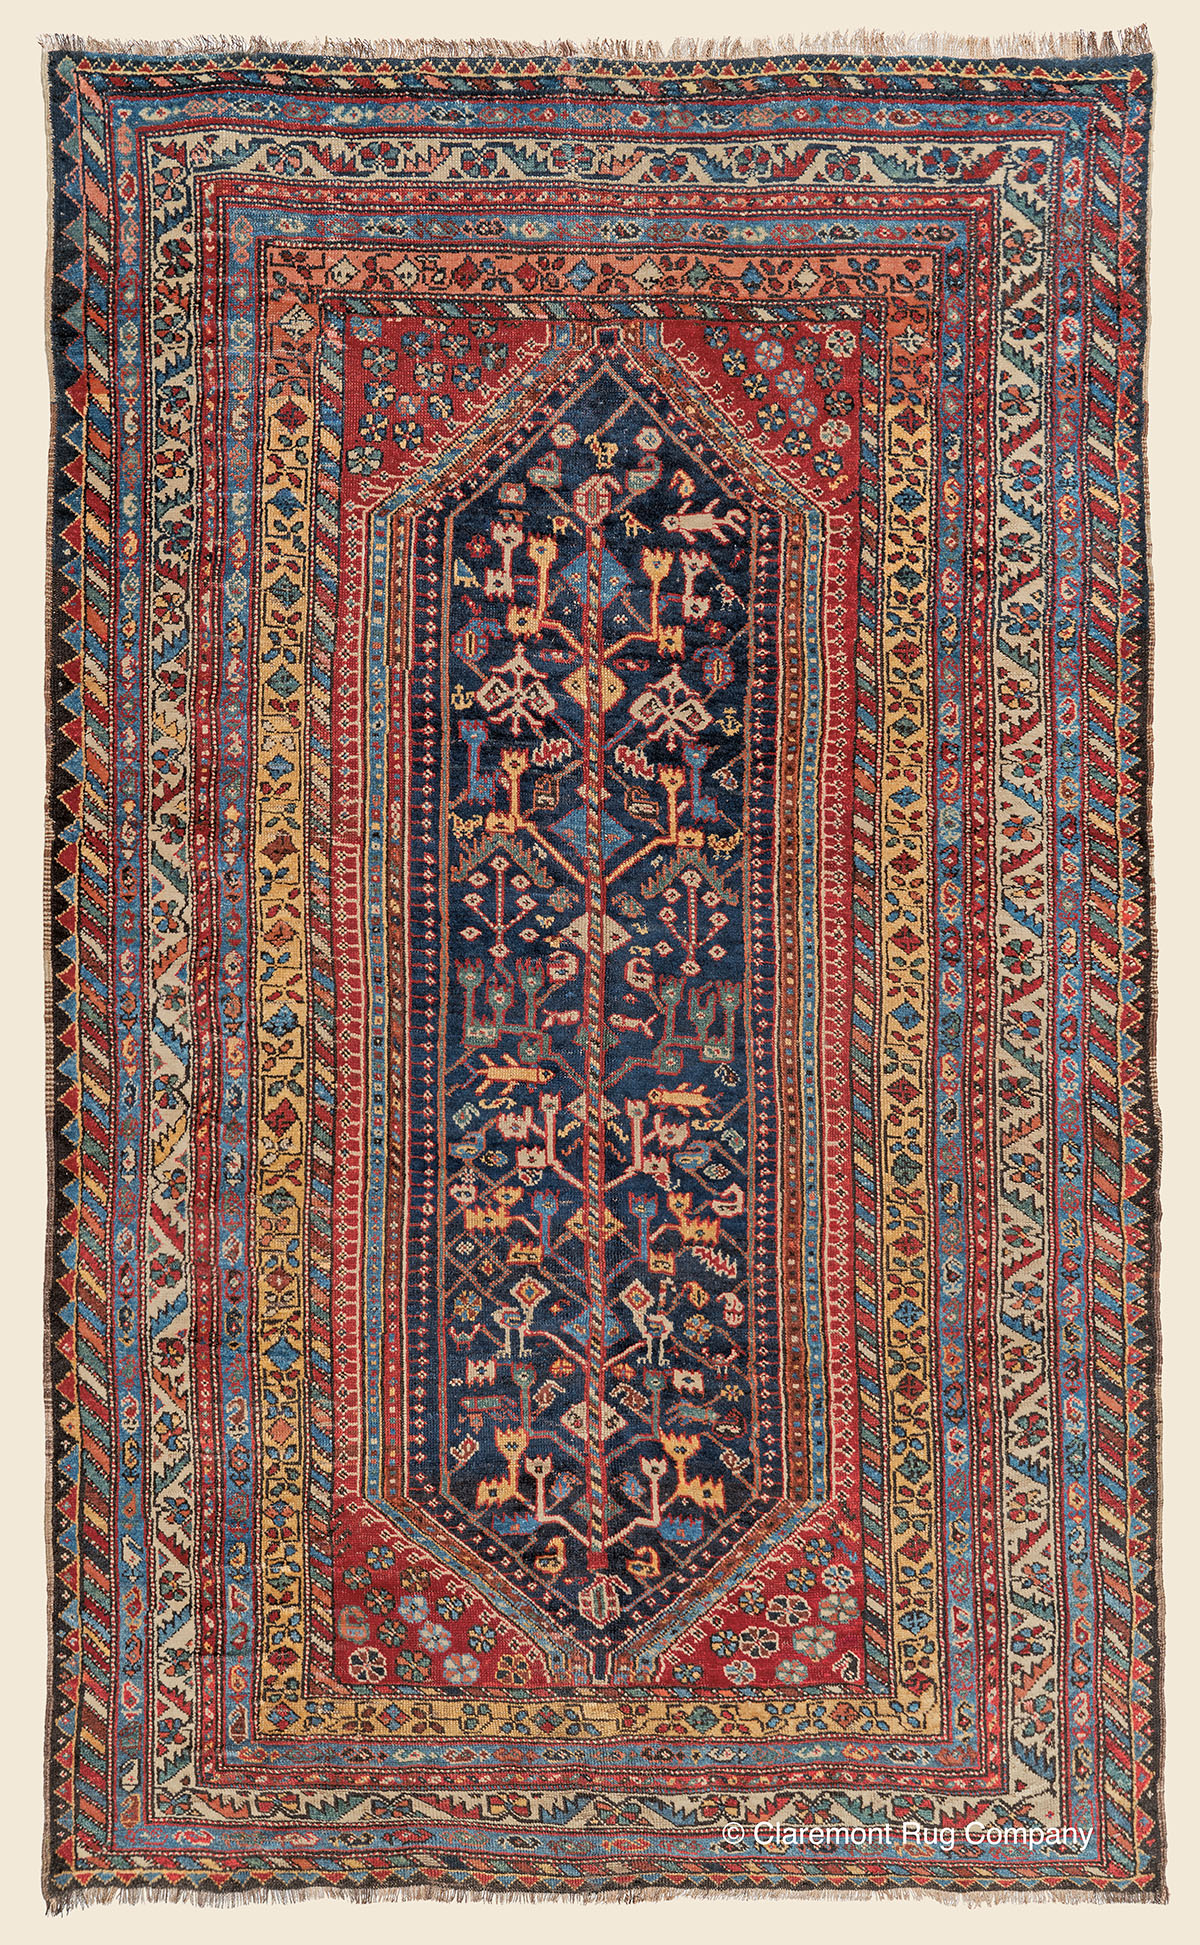 Learn more about this Antique Western Persian Luri 5ft 2in x8ft 4in Rug